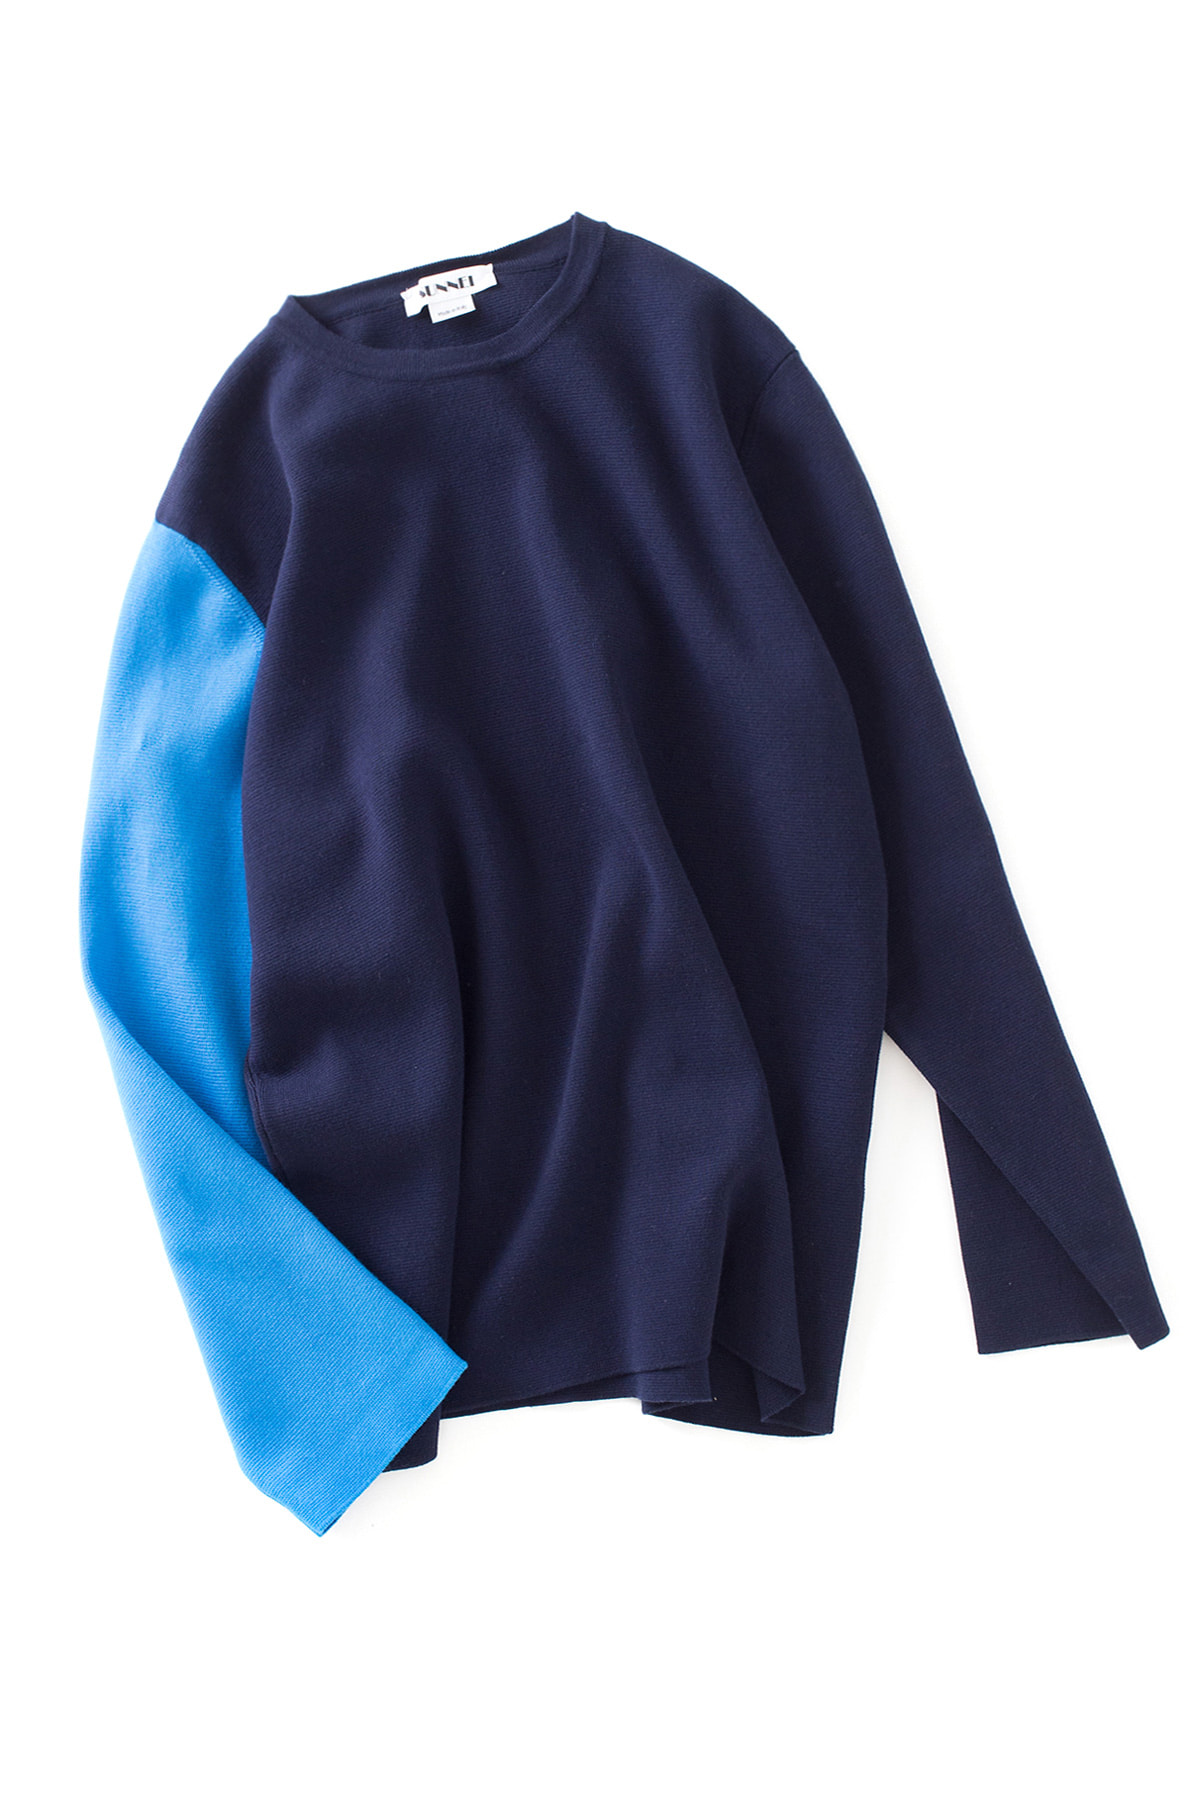 SUNNEI : Long Sleeve Knit T-Shirt (Blue / Azure)